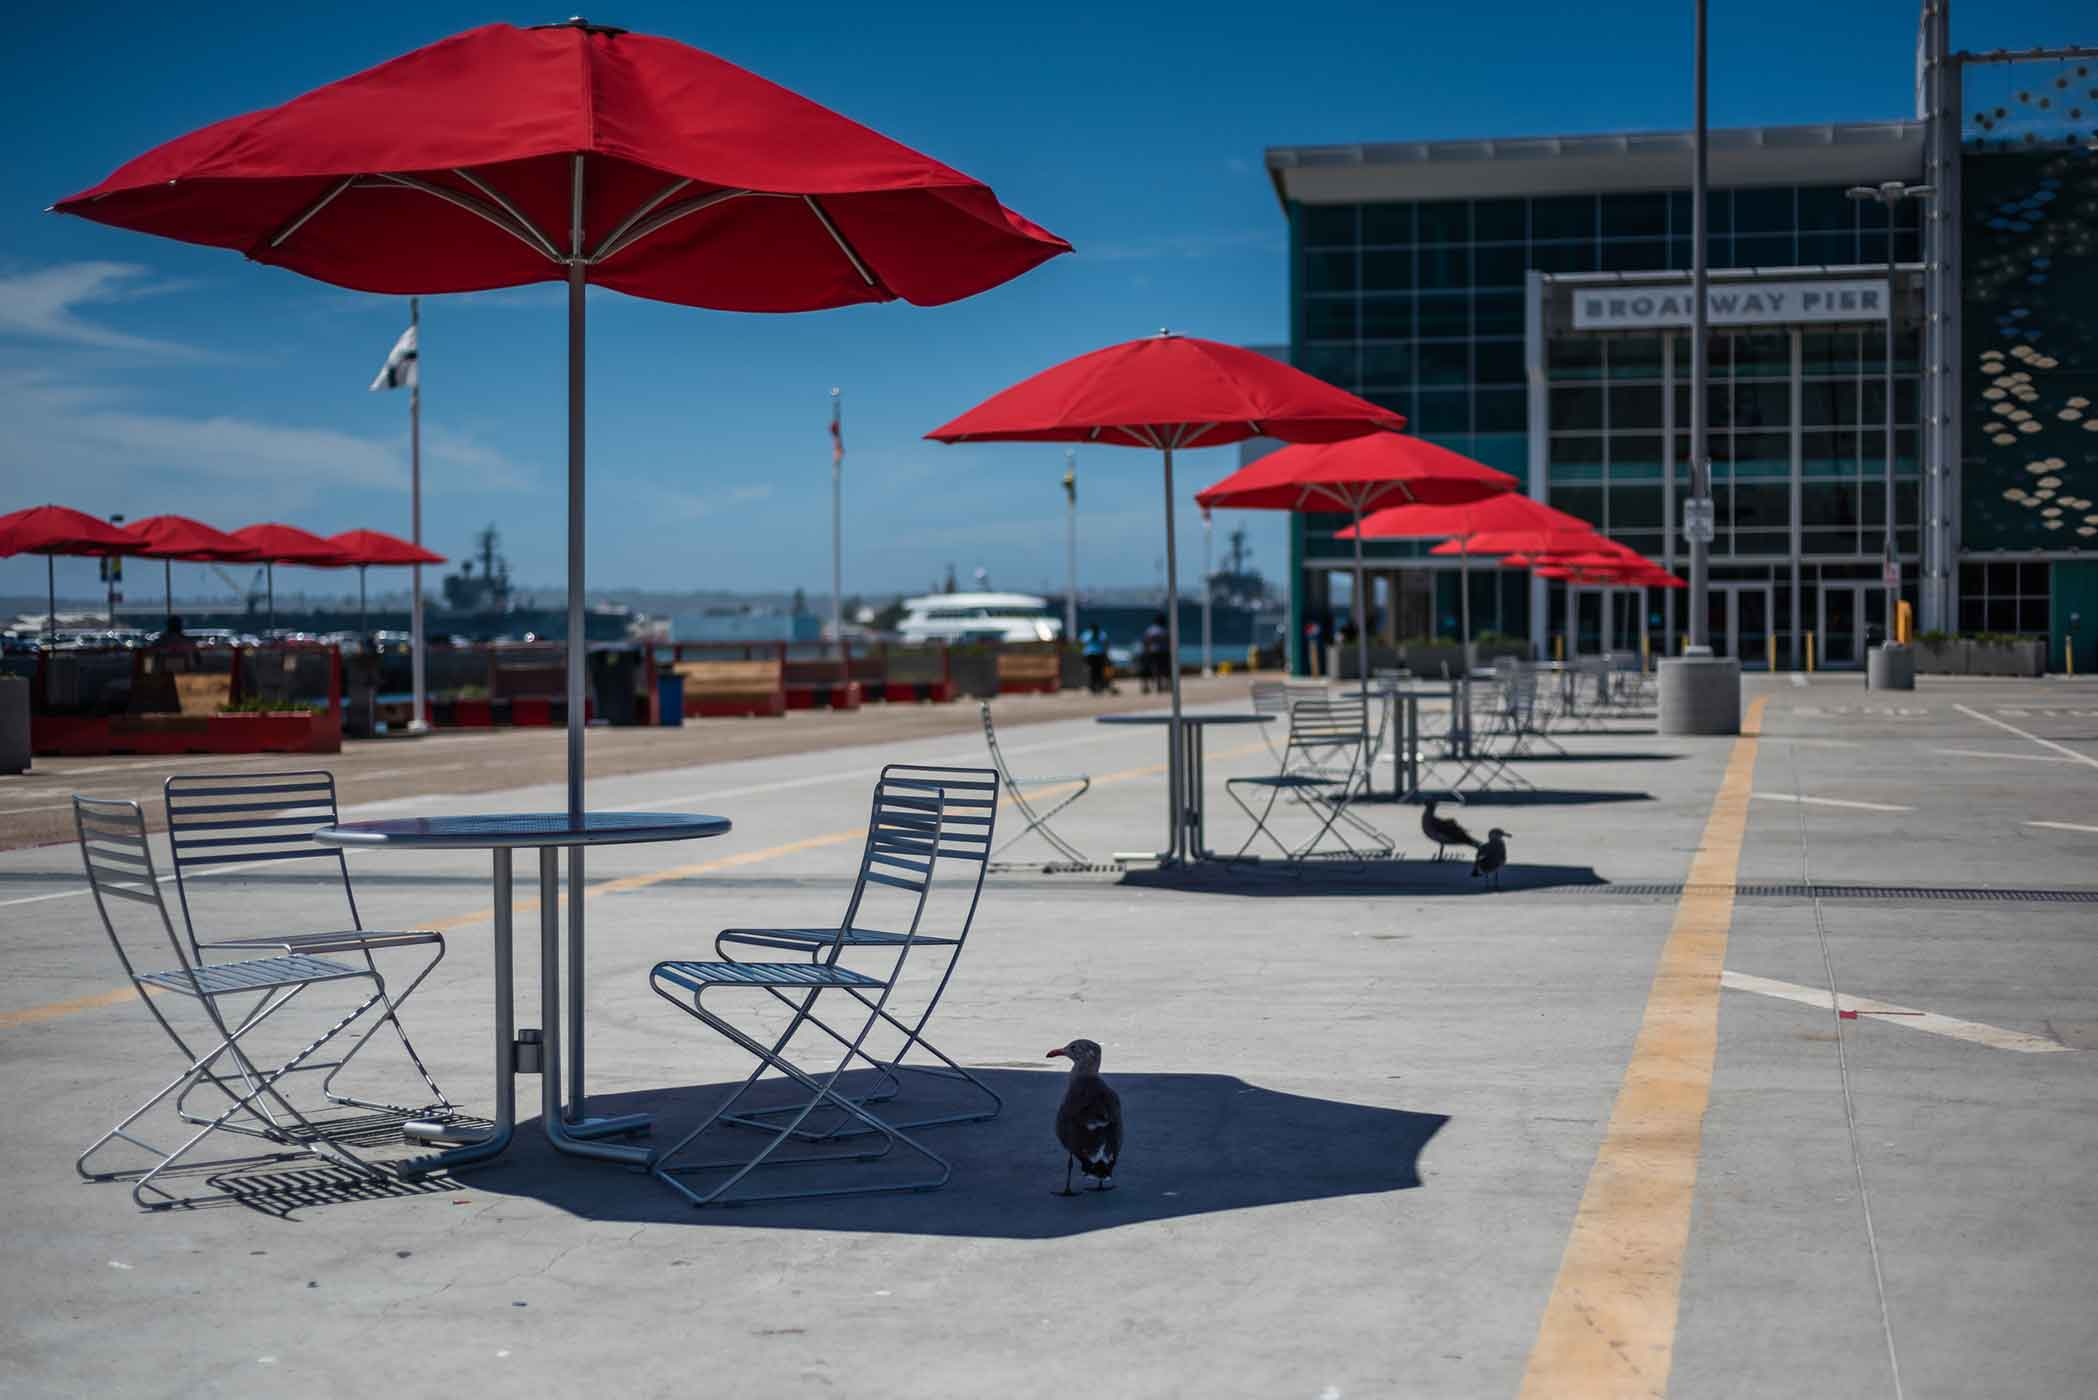 smlSan-Diego-Vacation---August-2015-103.jpg